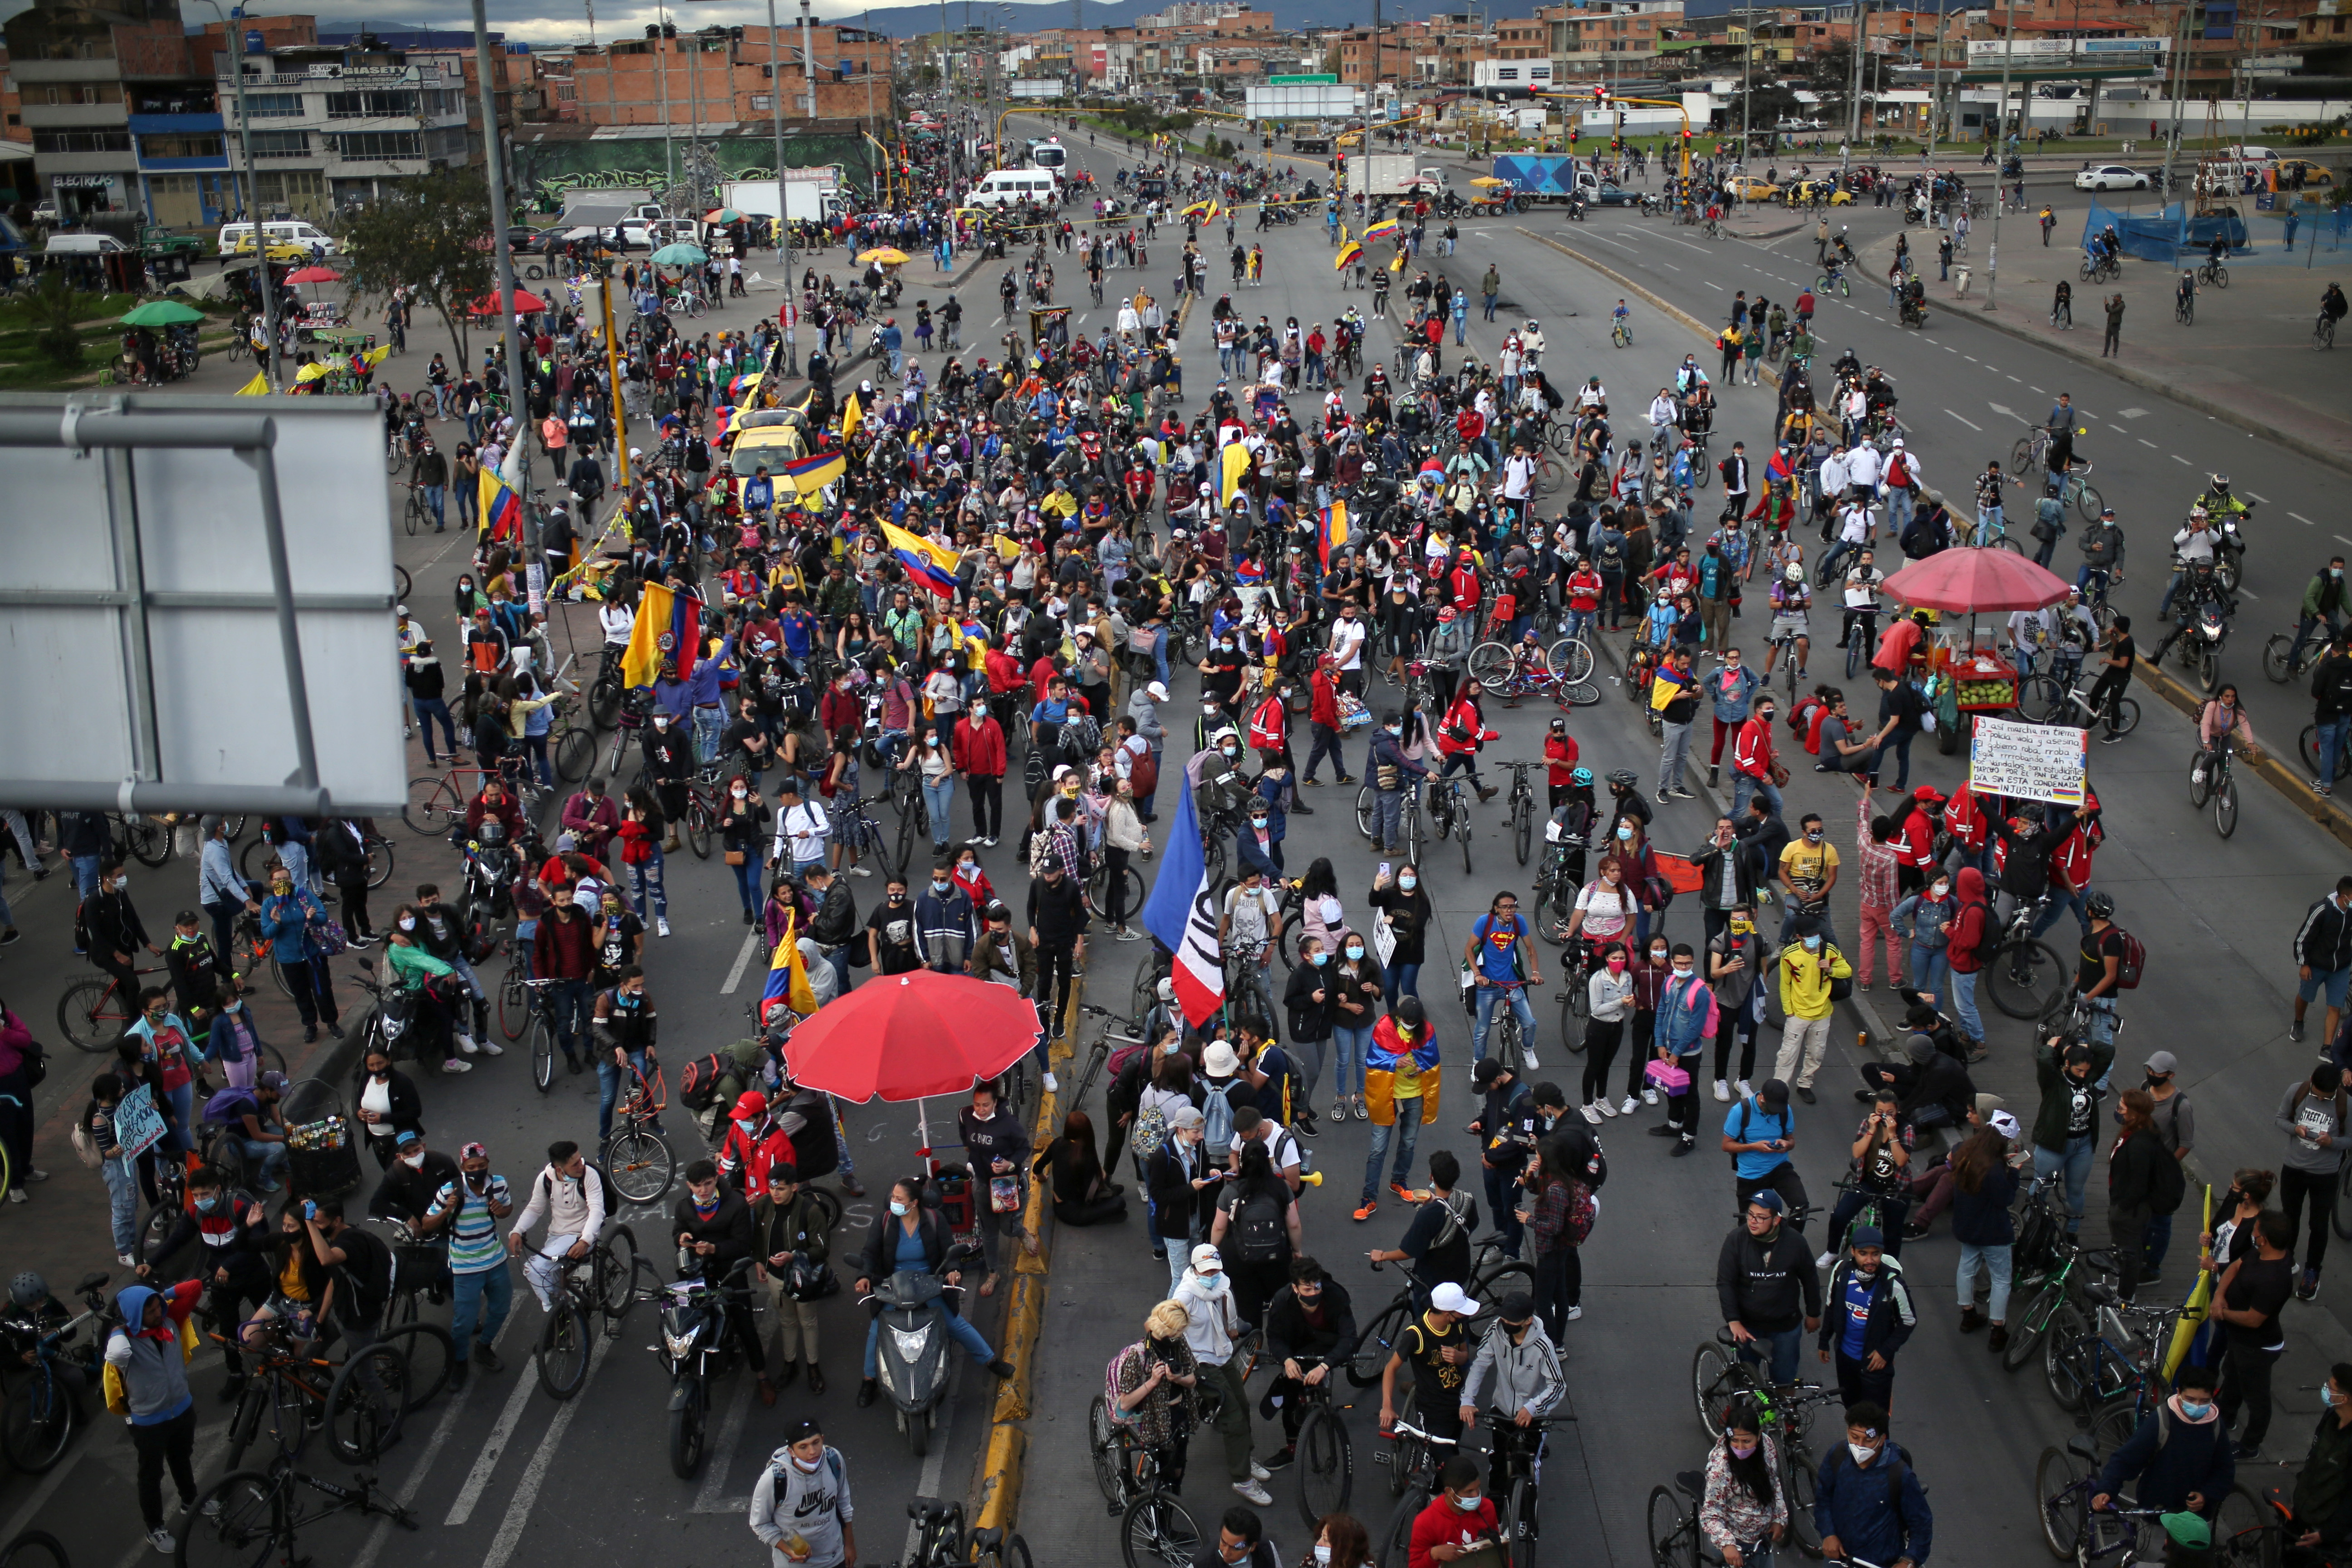 Demonstrators take part in a protest demanding government action to tackle poverty, police violence and inequalities in the healthcare and education systems, in Bogota, Colombia May 26, 2021. REUTERS/Luisa Gonzalez